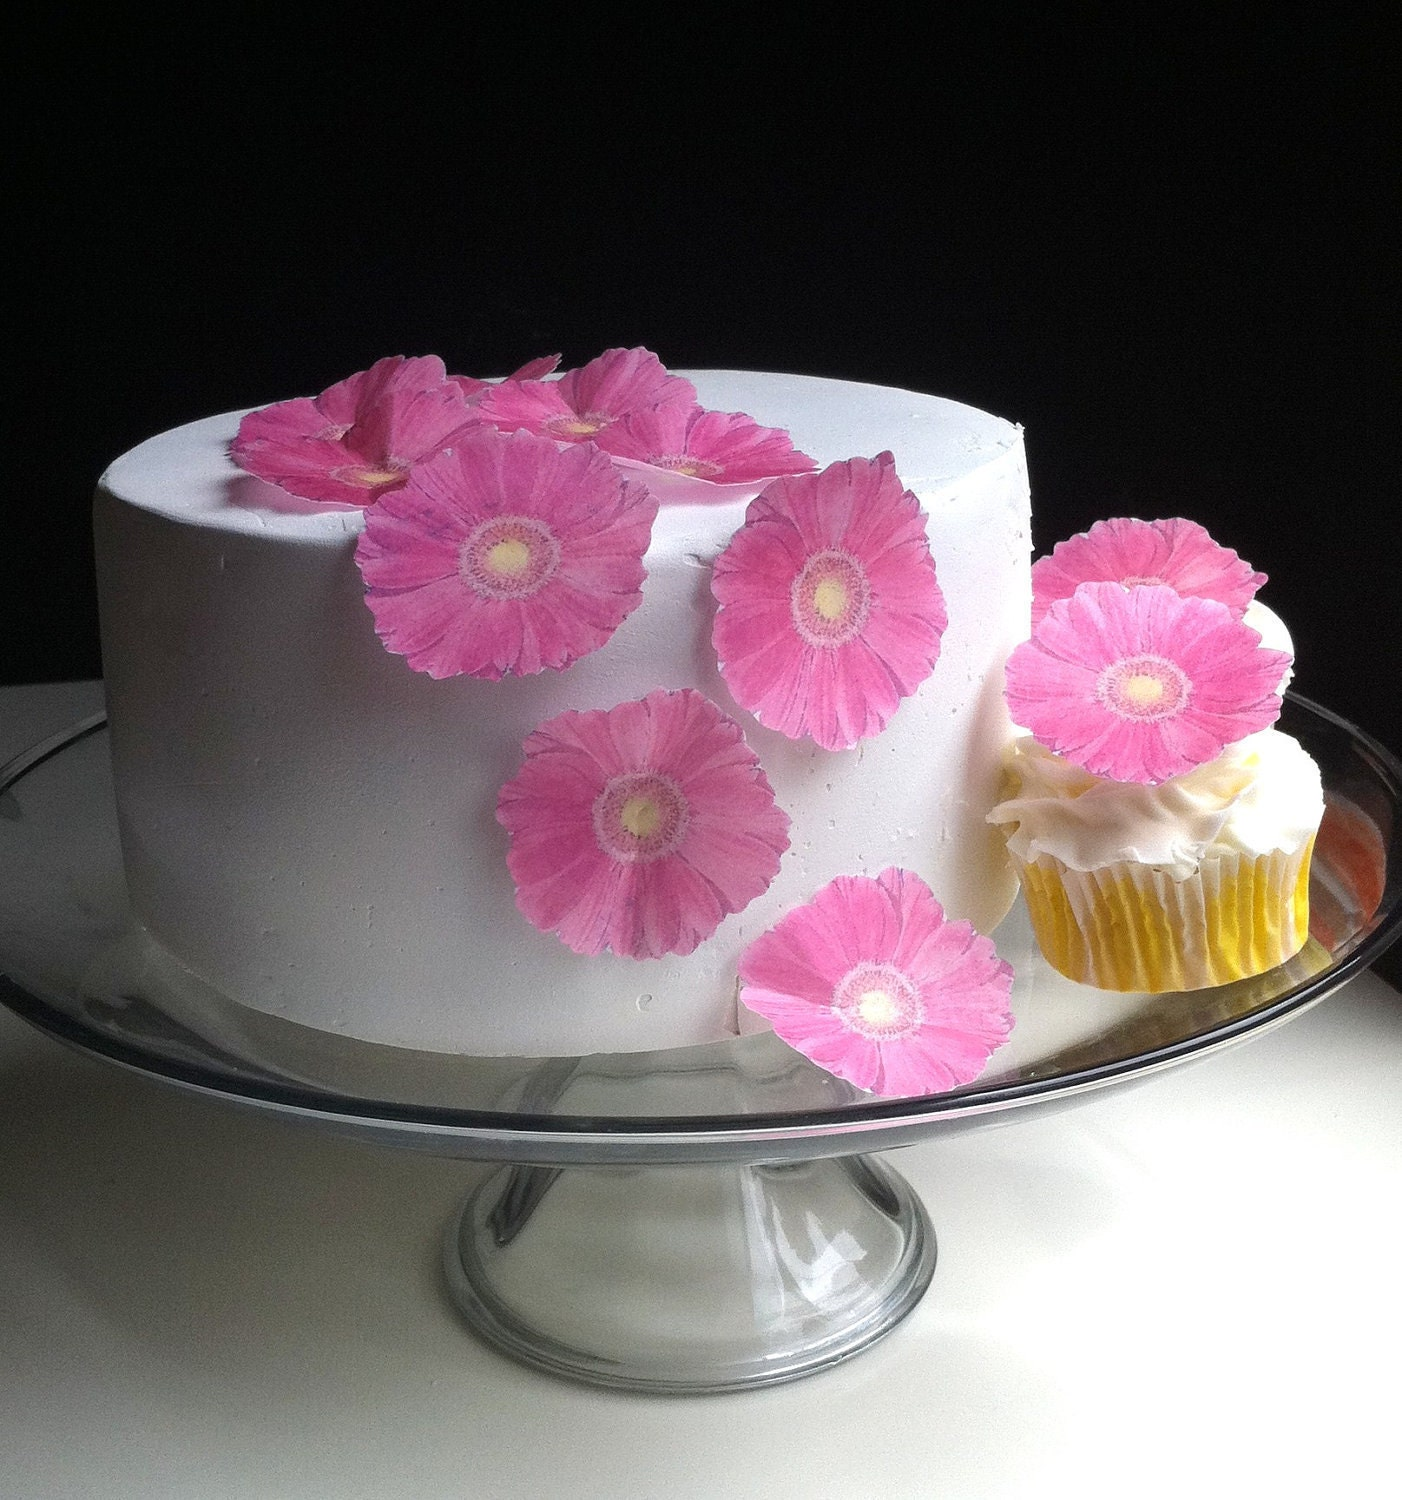 The Original EDIBLE Gerbera Daisies Pink Cake